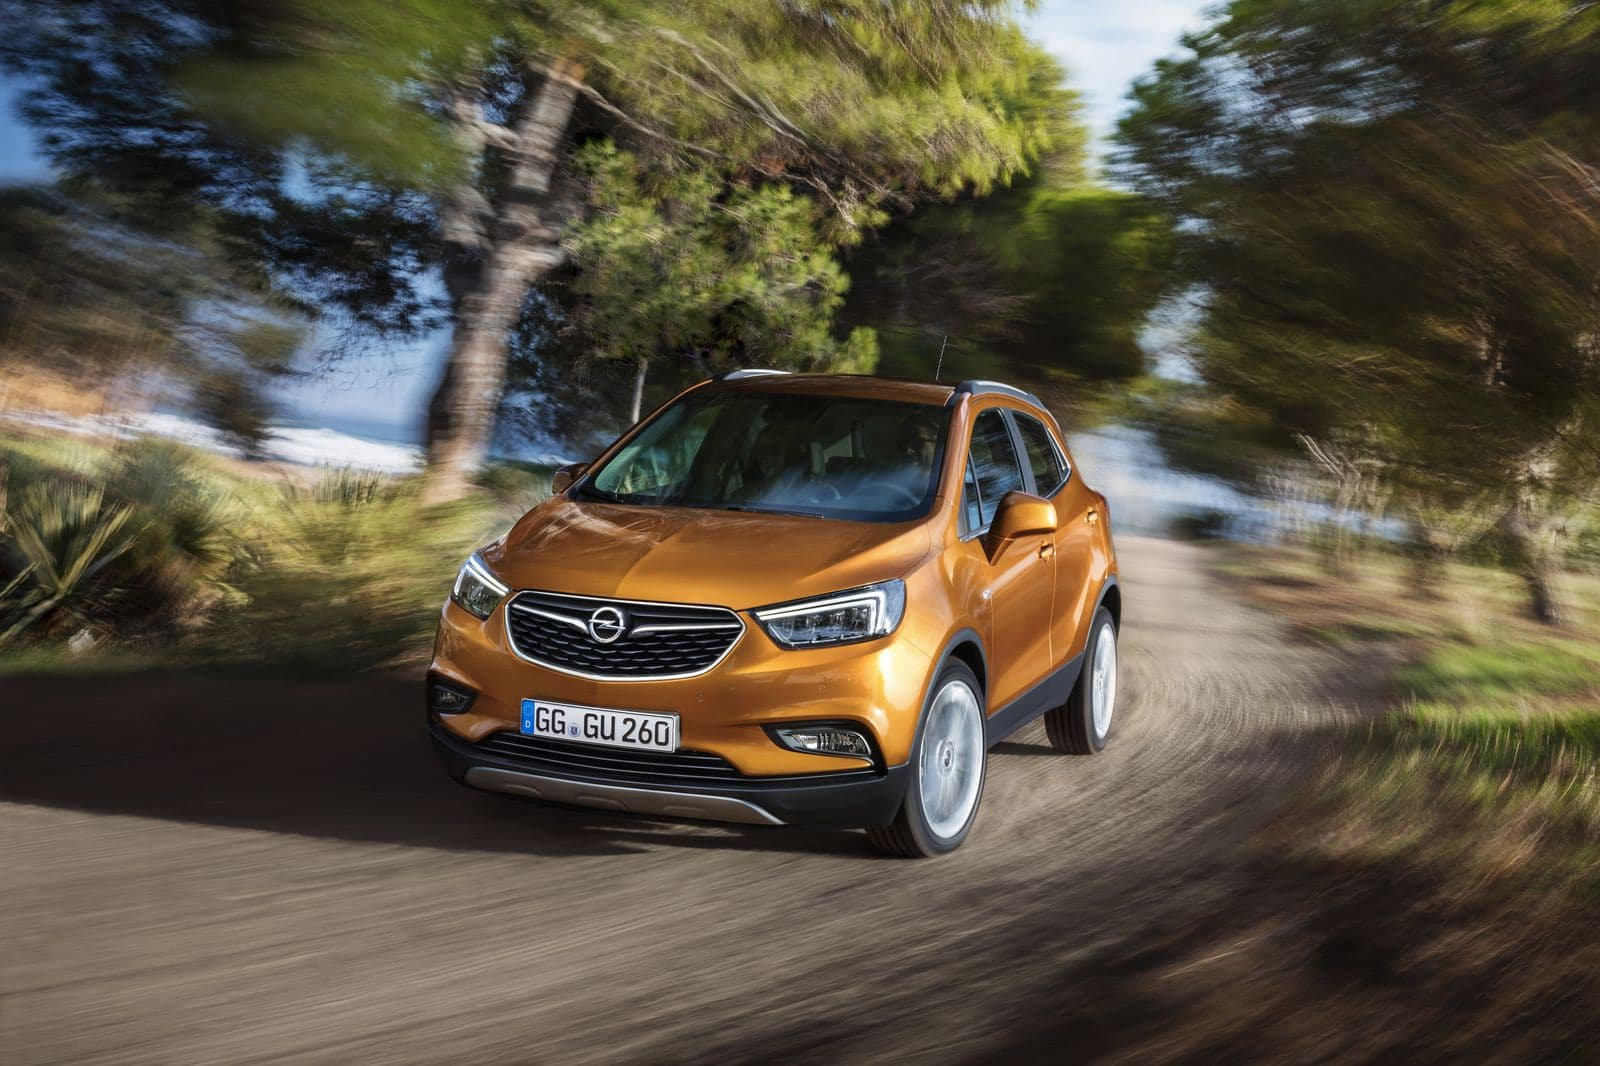 opel mokka x le petit suv se refait une beaut. Black Bedroom Furniture Sets. Home Design Ideas